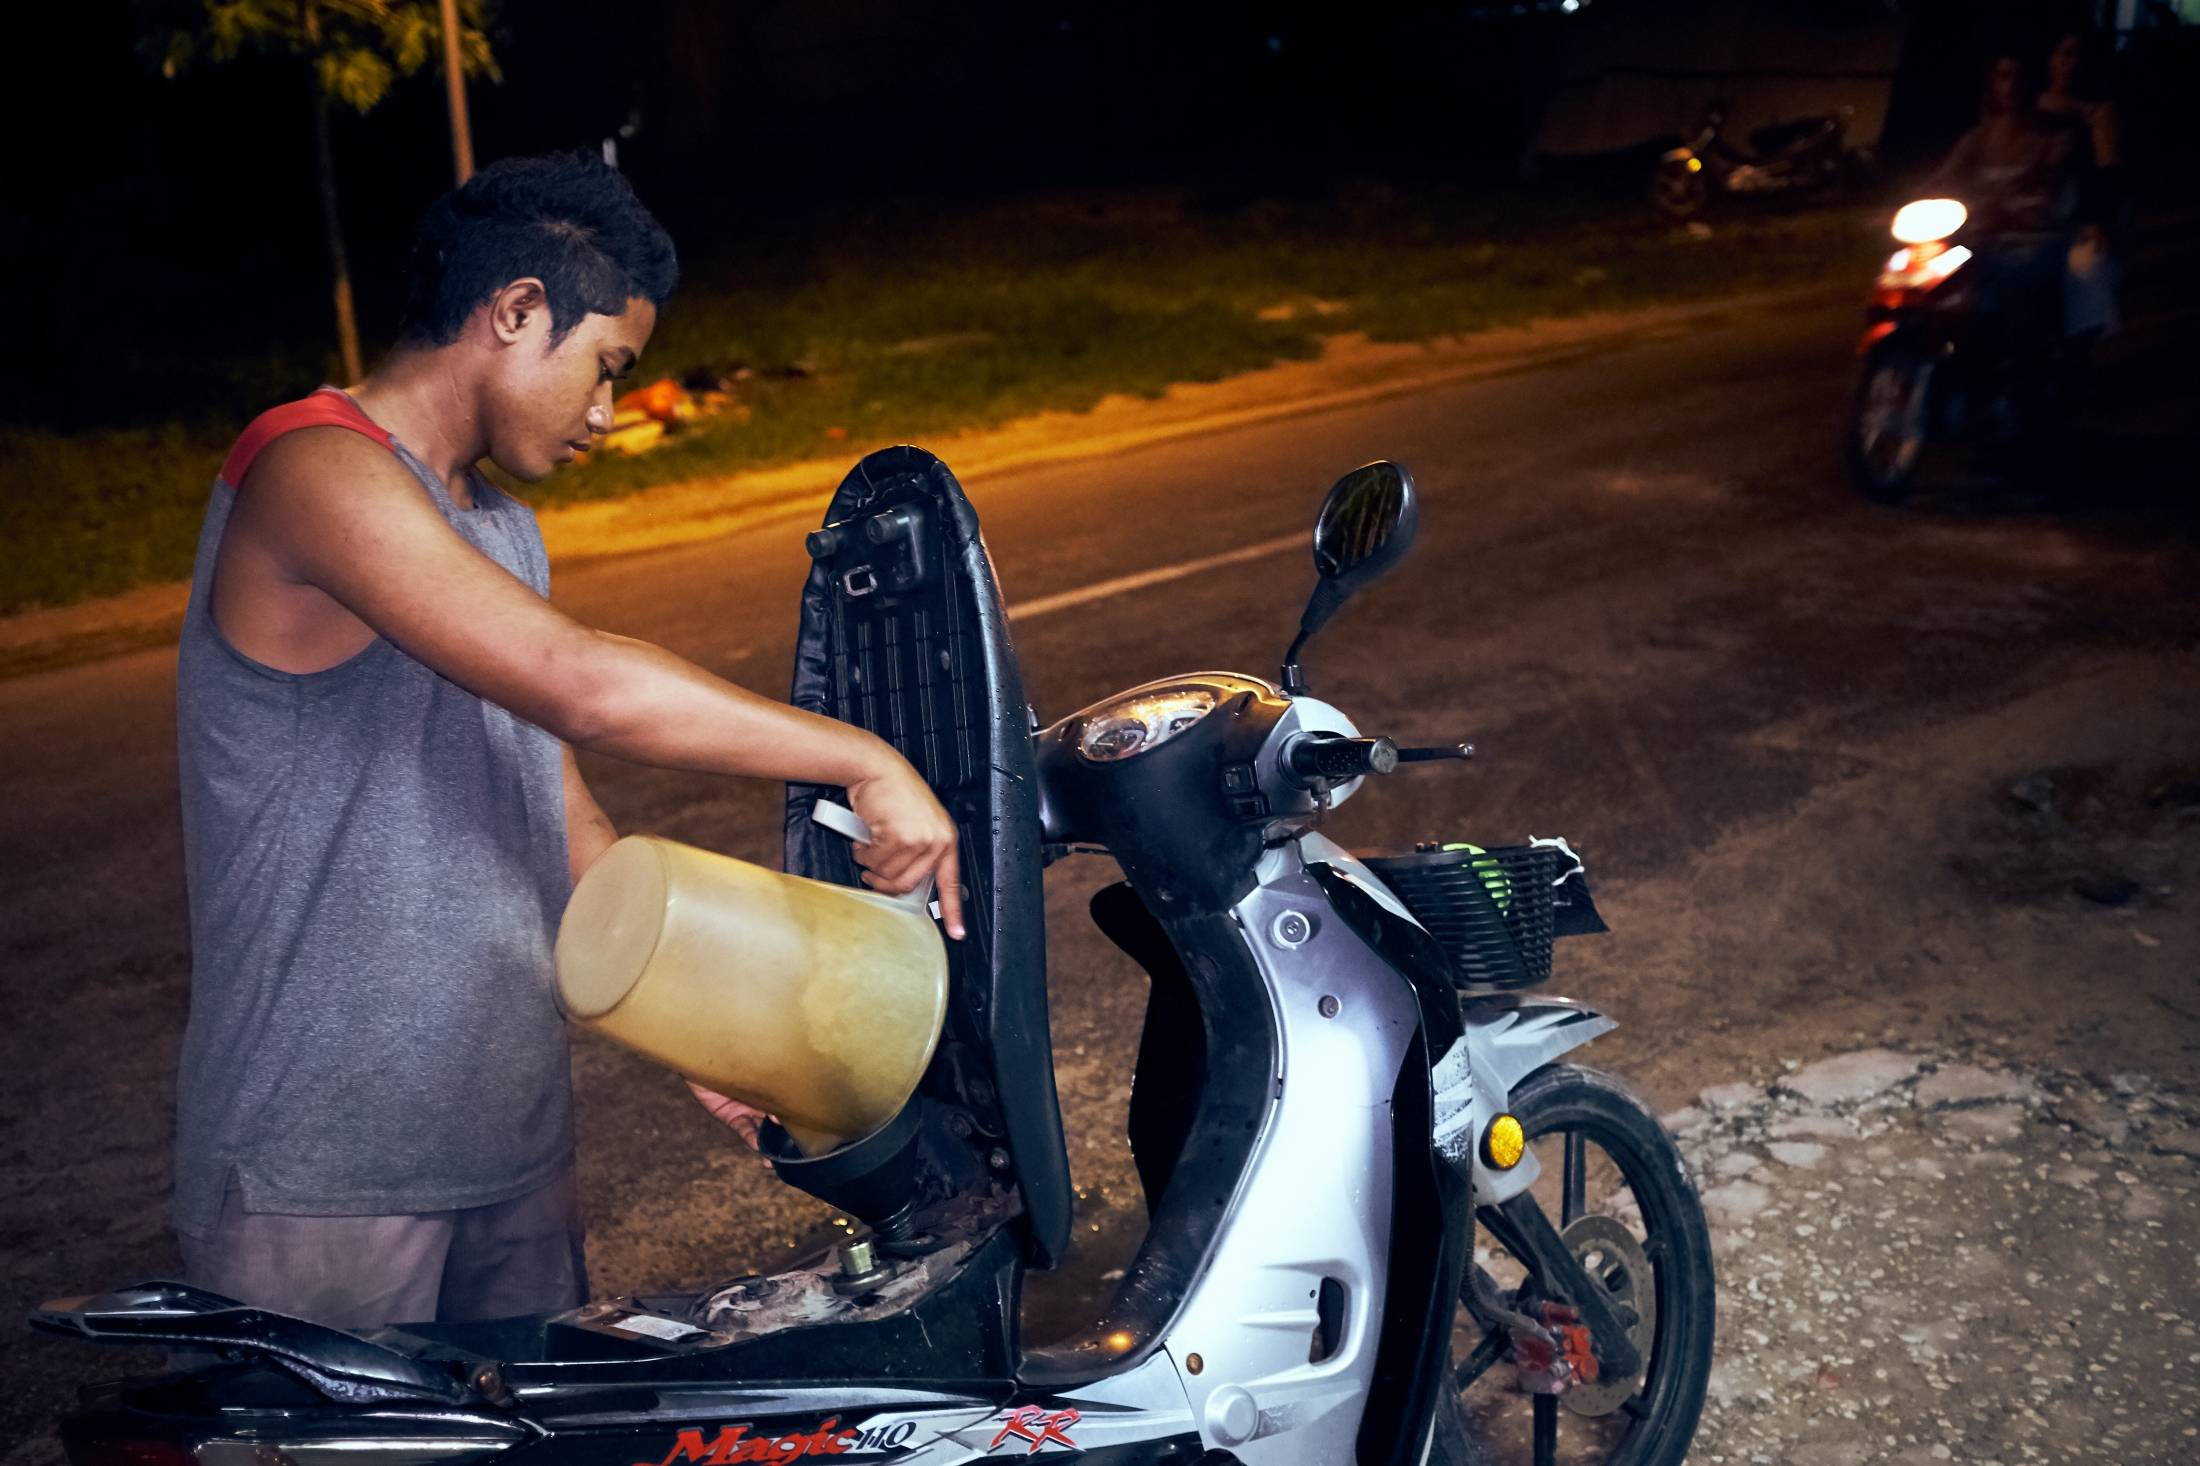 How to fill a scooter with gas, Tuvalu style.